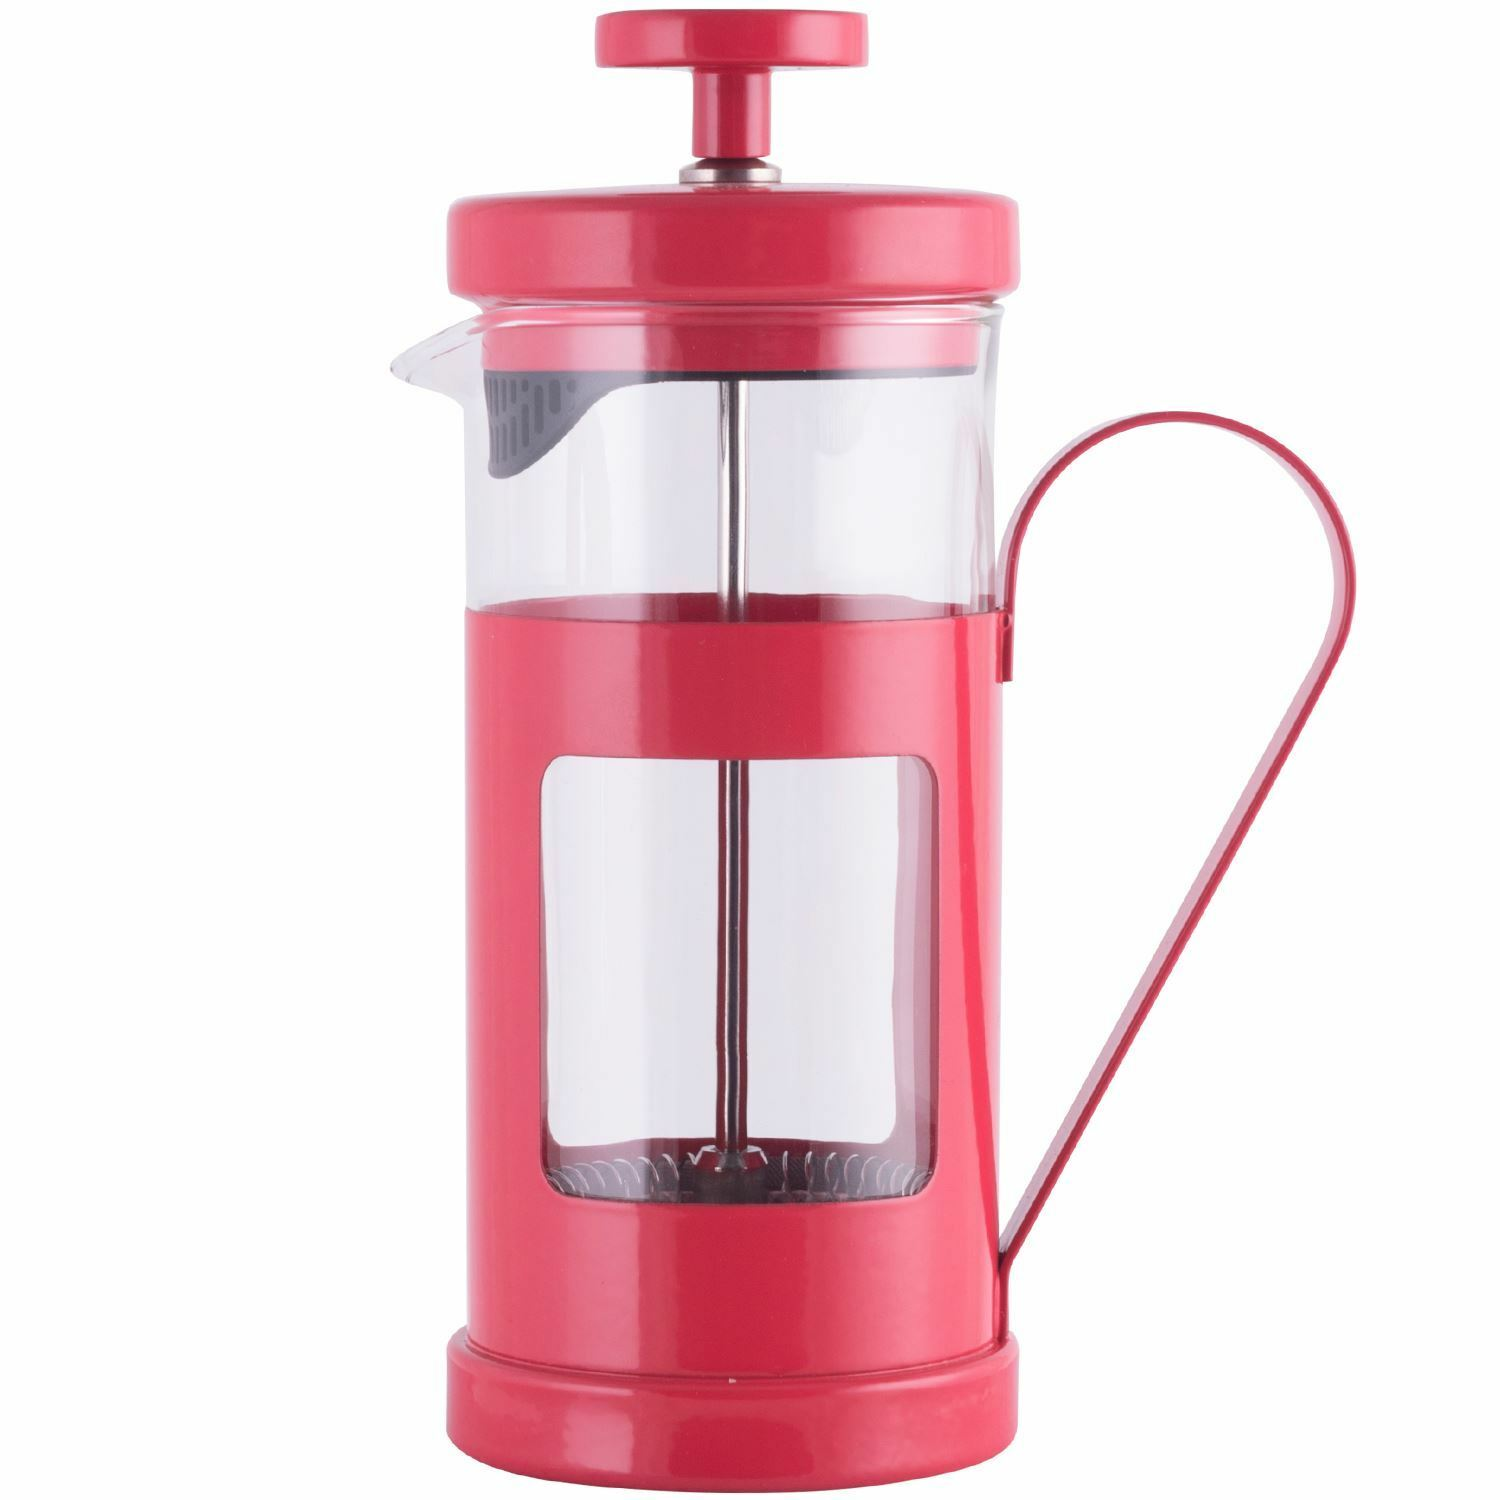 la cafetiere monaco 3 cup red cafetiere coffee maker picclick uk. Black Bedroom Furniture Sets. Home Design Ideas